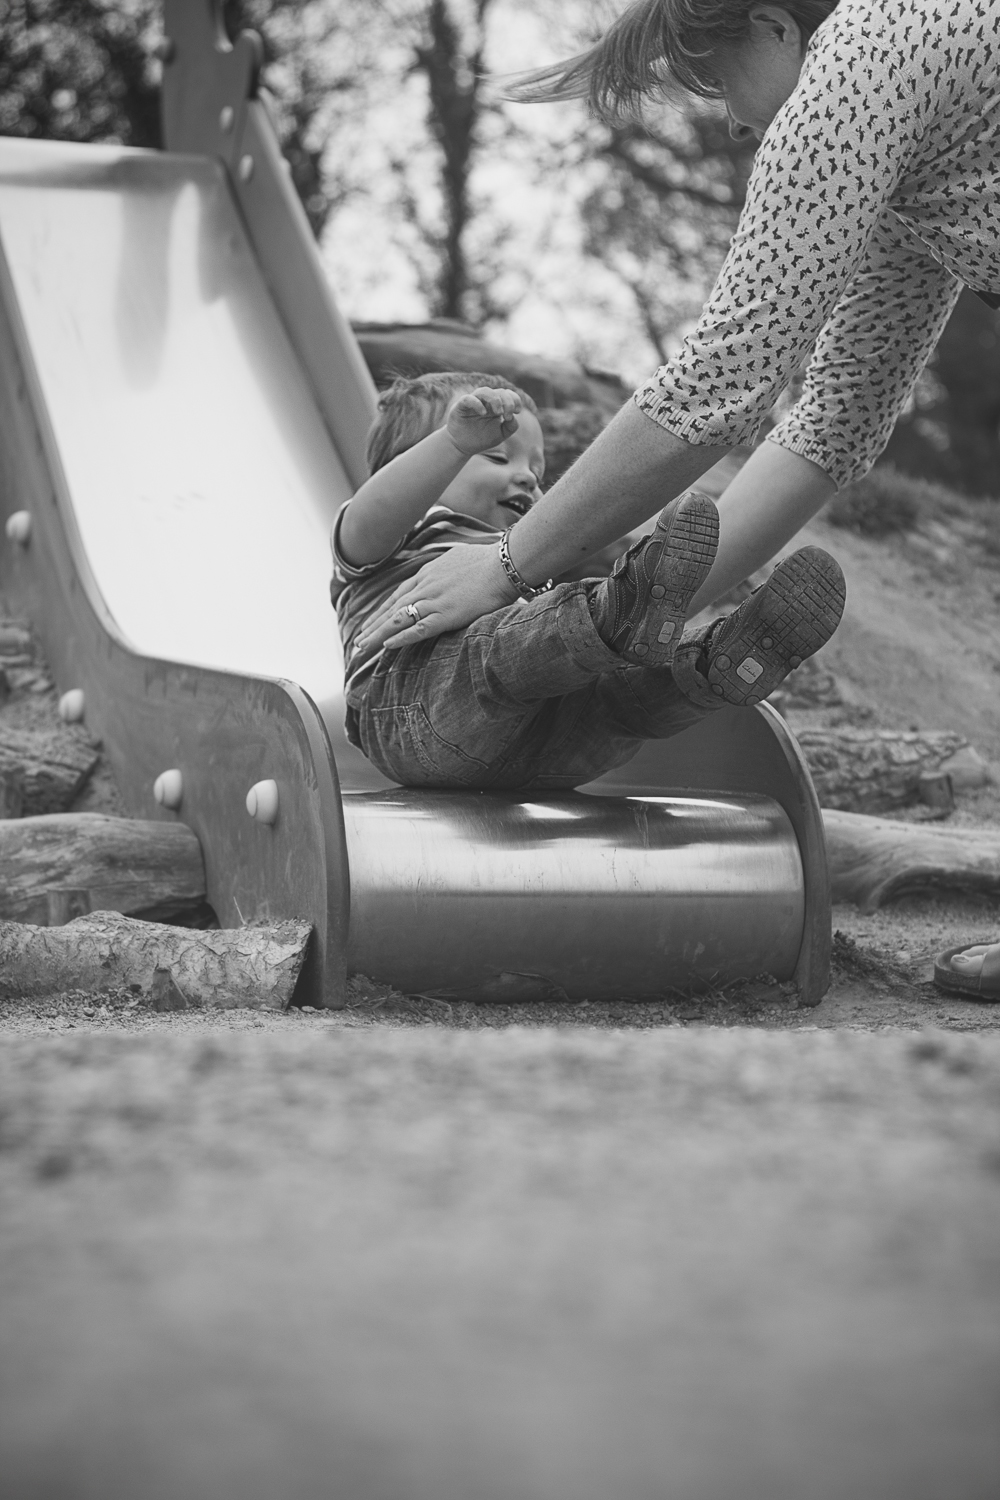 Fun family photoshoot showing a little boy playing on the slide in the park in Dunorlan